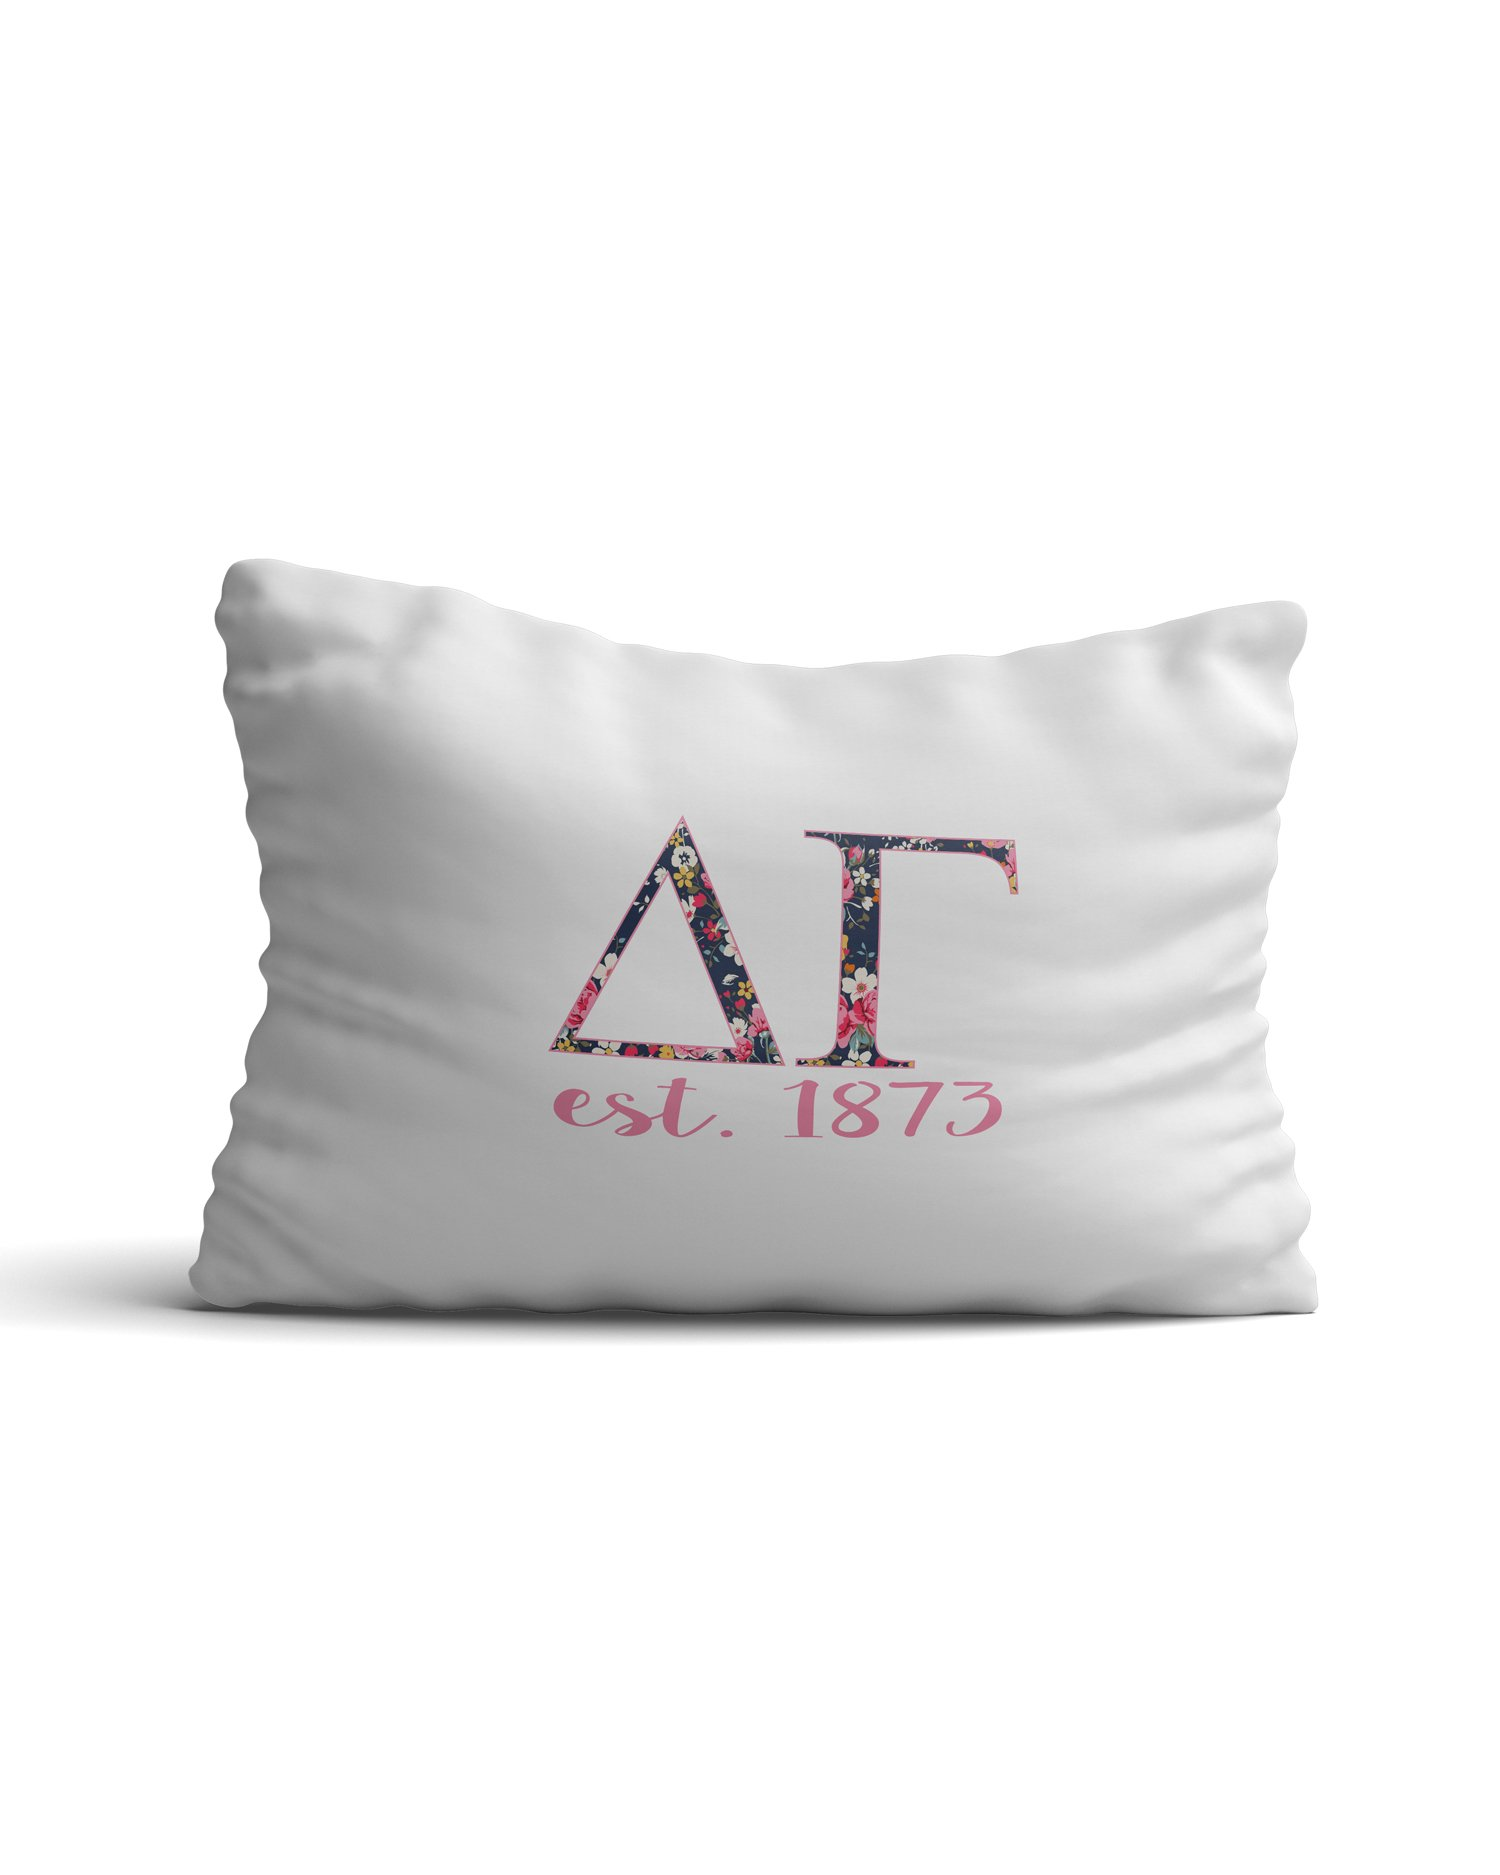 Desert Cactus Delta Gamma Sorority Floral Letters with Founding Year Pillowcase 300 Thread Count 100% Cotton DG